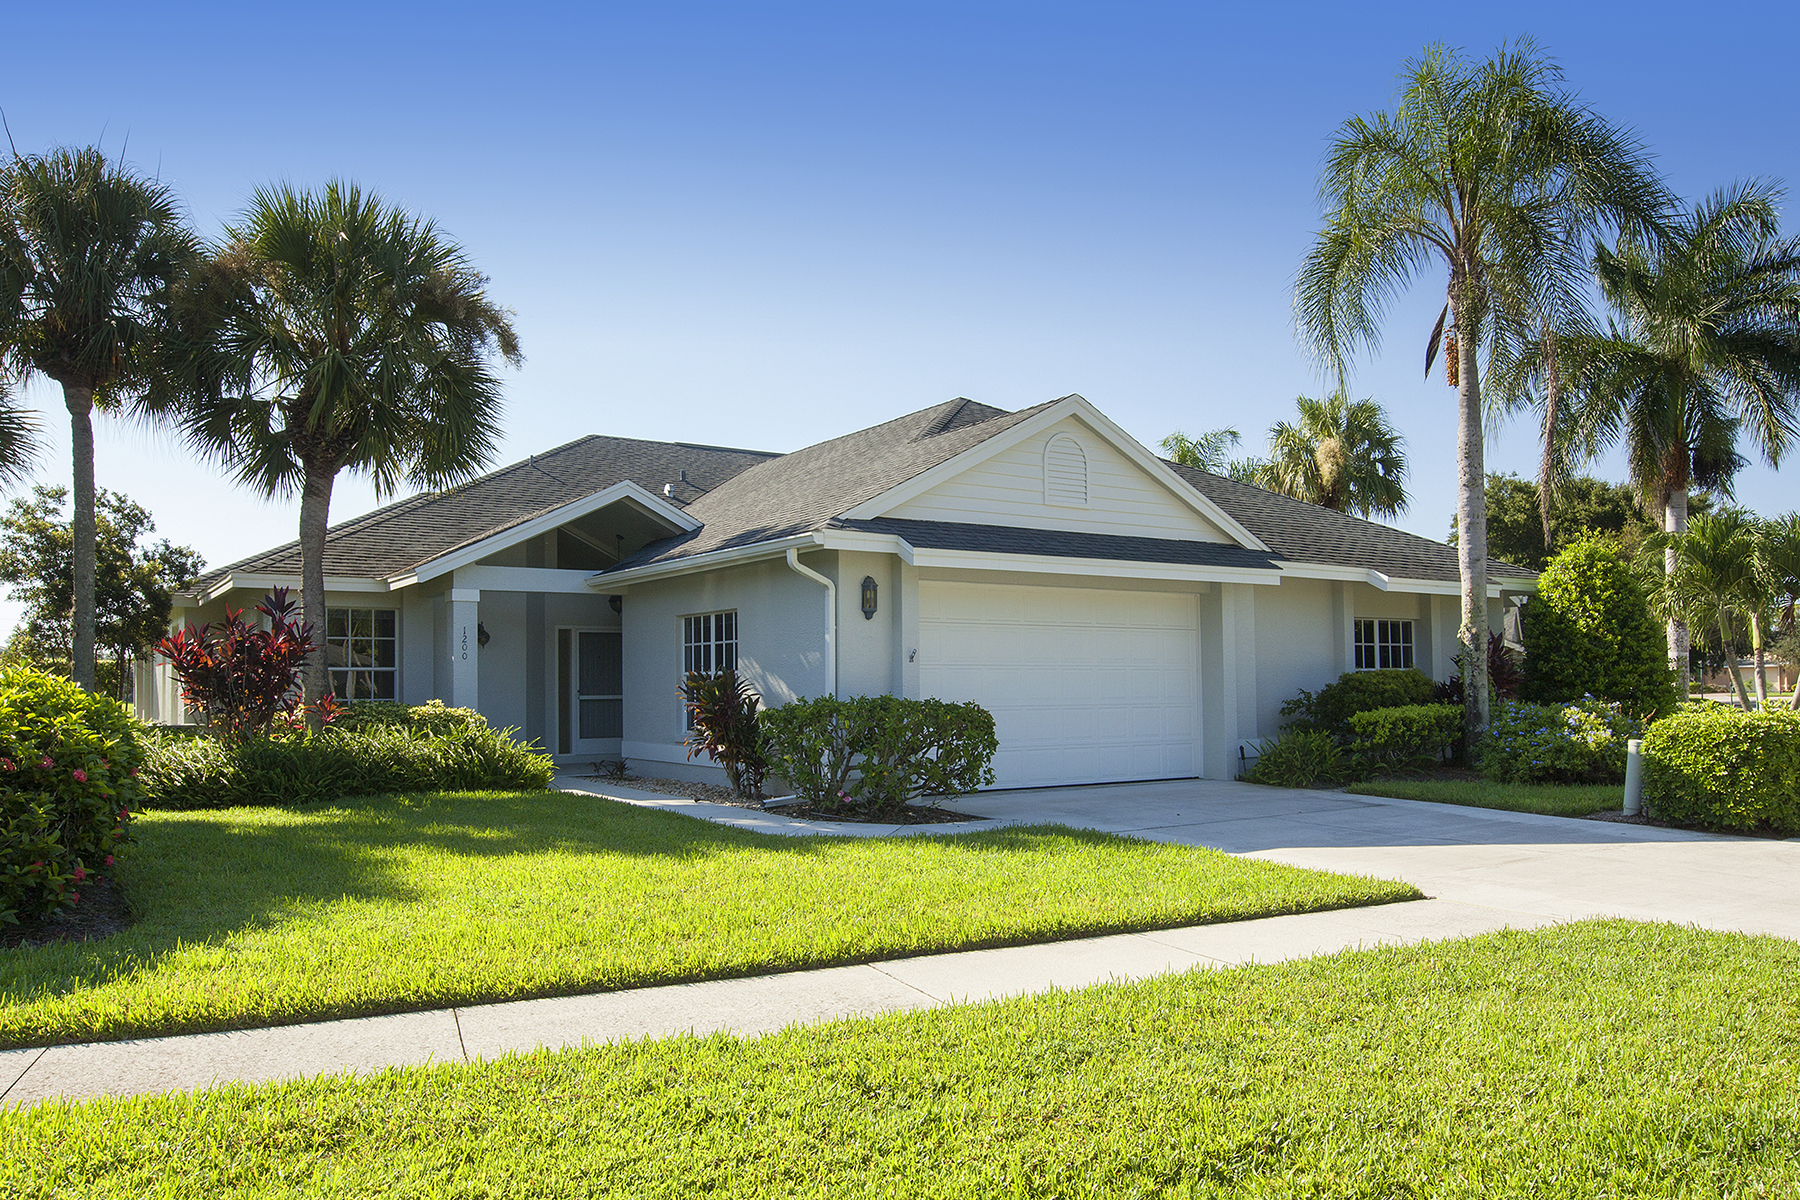 Single Family Home for Sale at IMPERIAL GOLF ESTATES - PARK PLACE WEST 1200 Imperial Dr 25 Naples, Florida 34110 United States